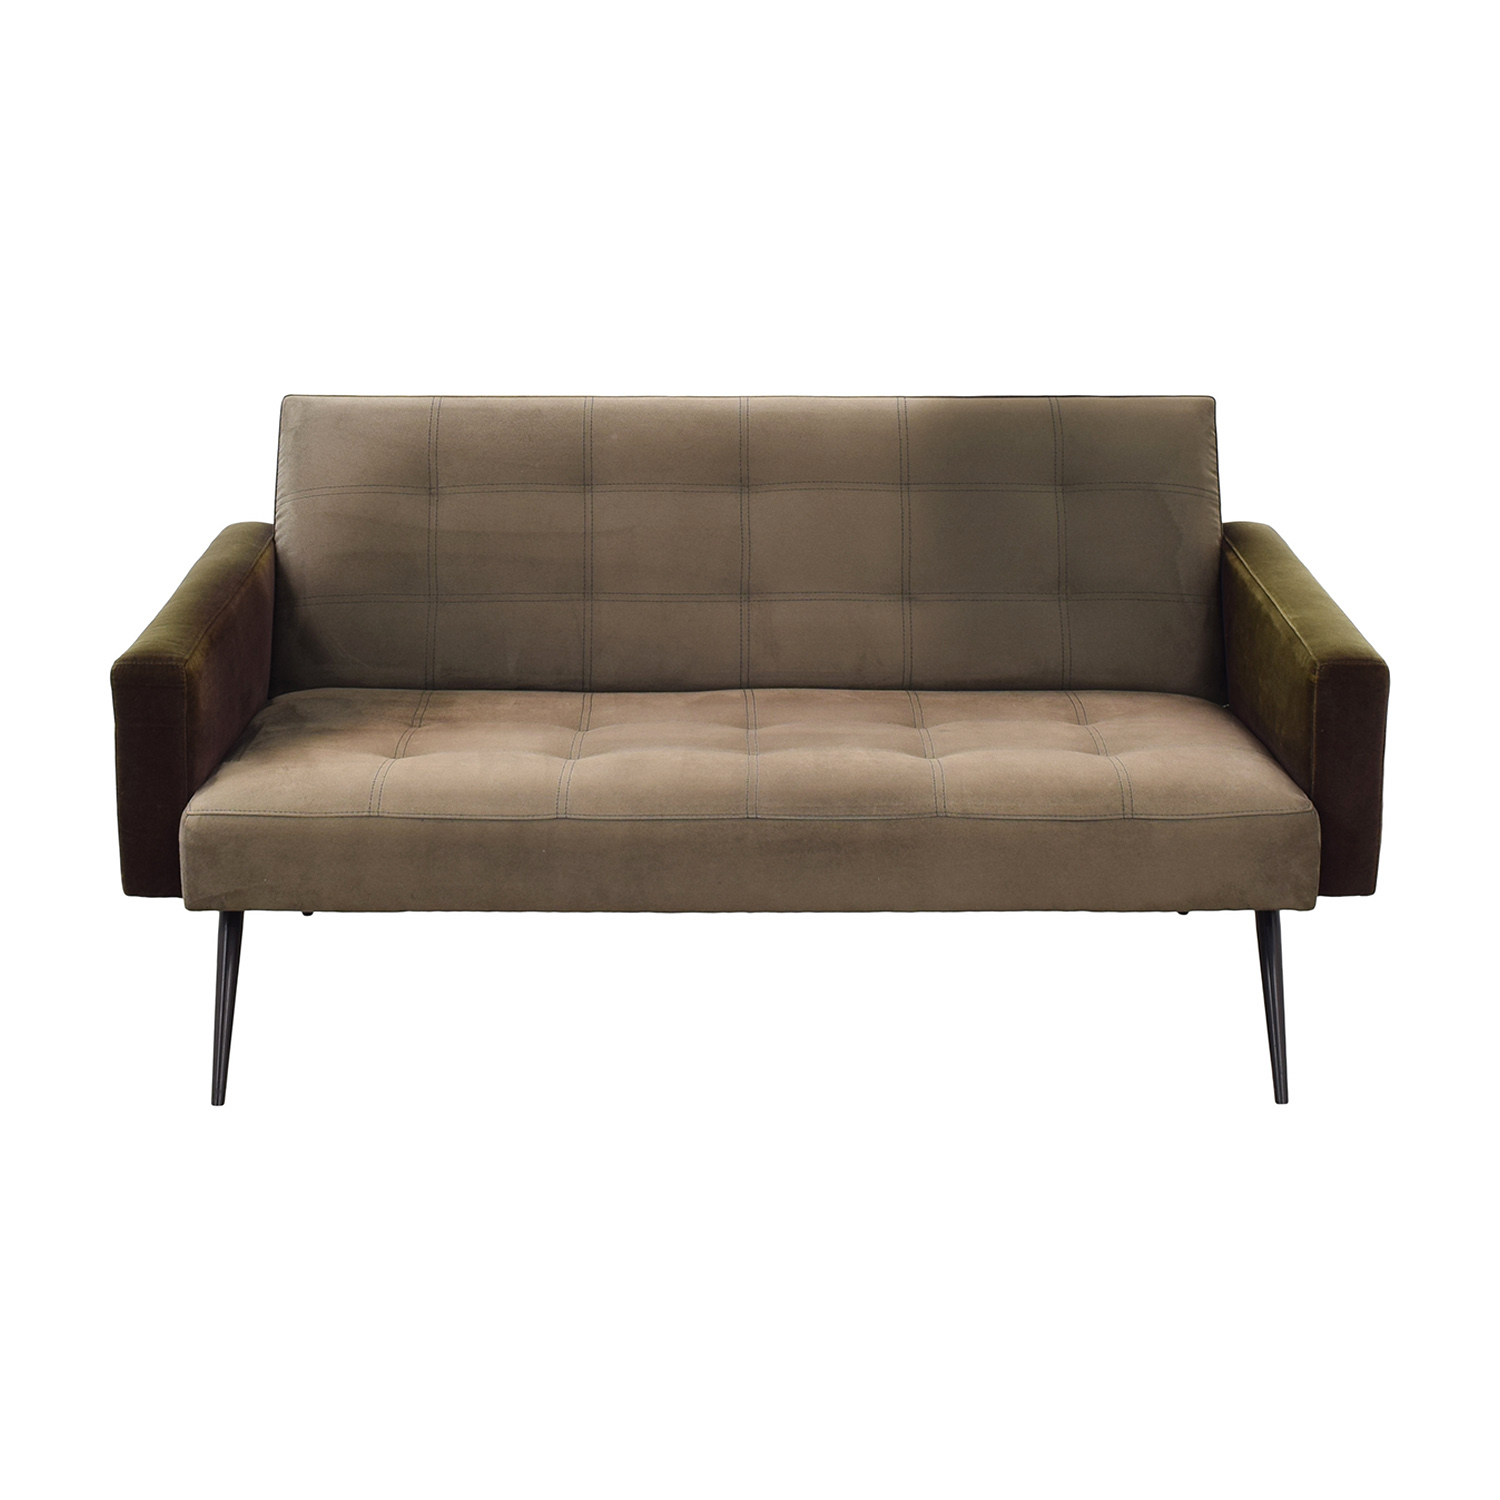 Jonathan Adler Jonathan Adler Loveseat on sale